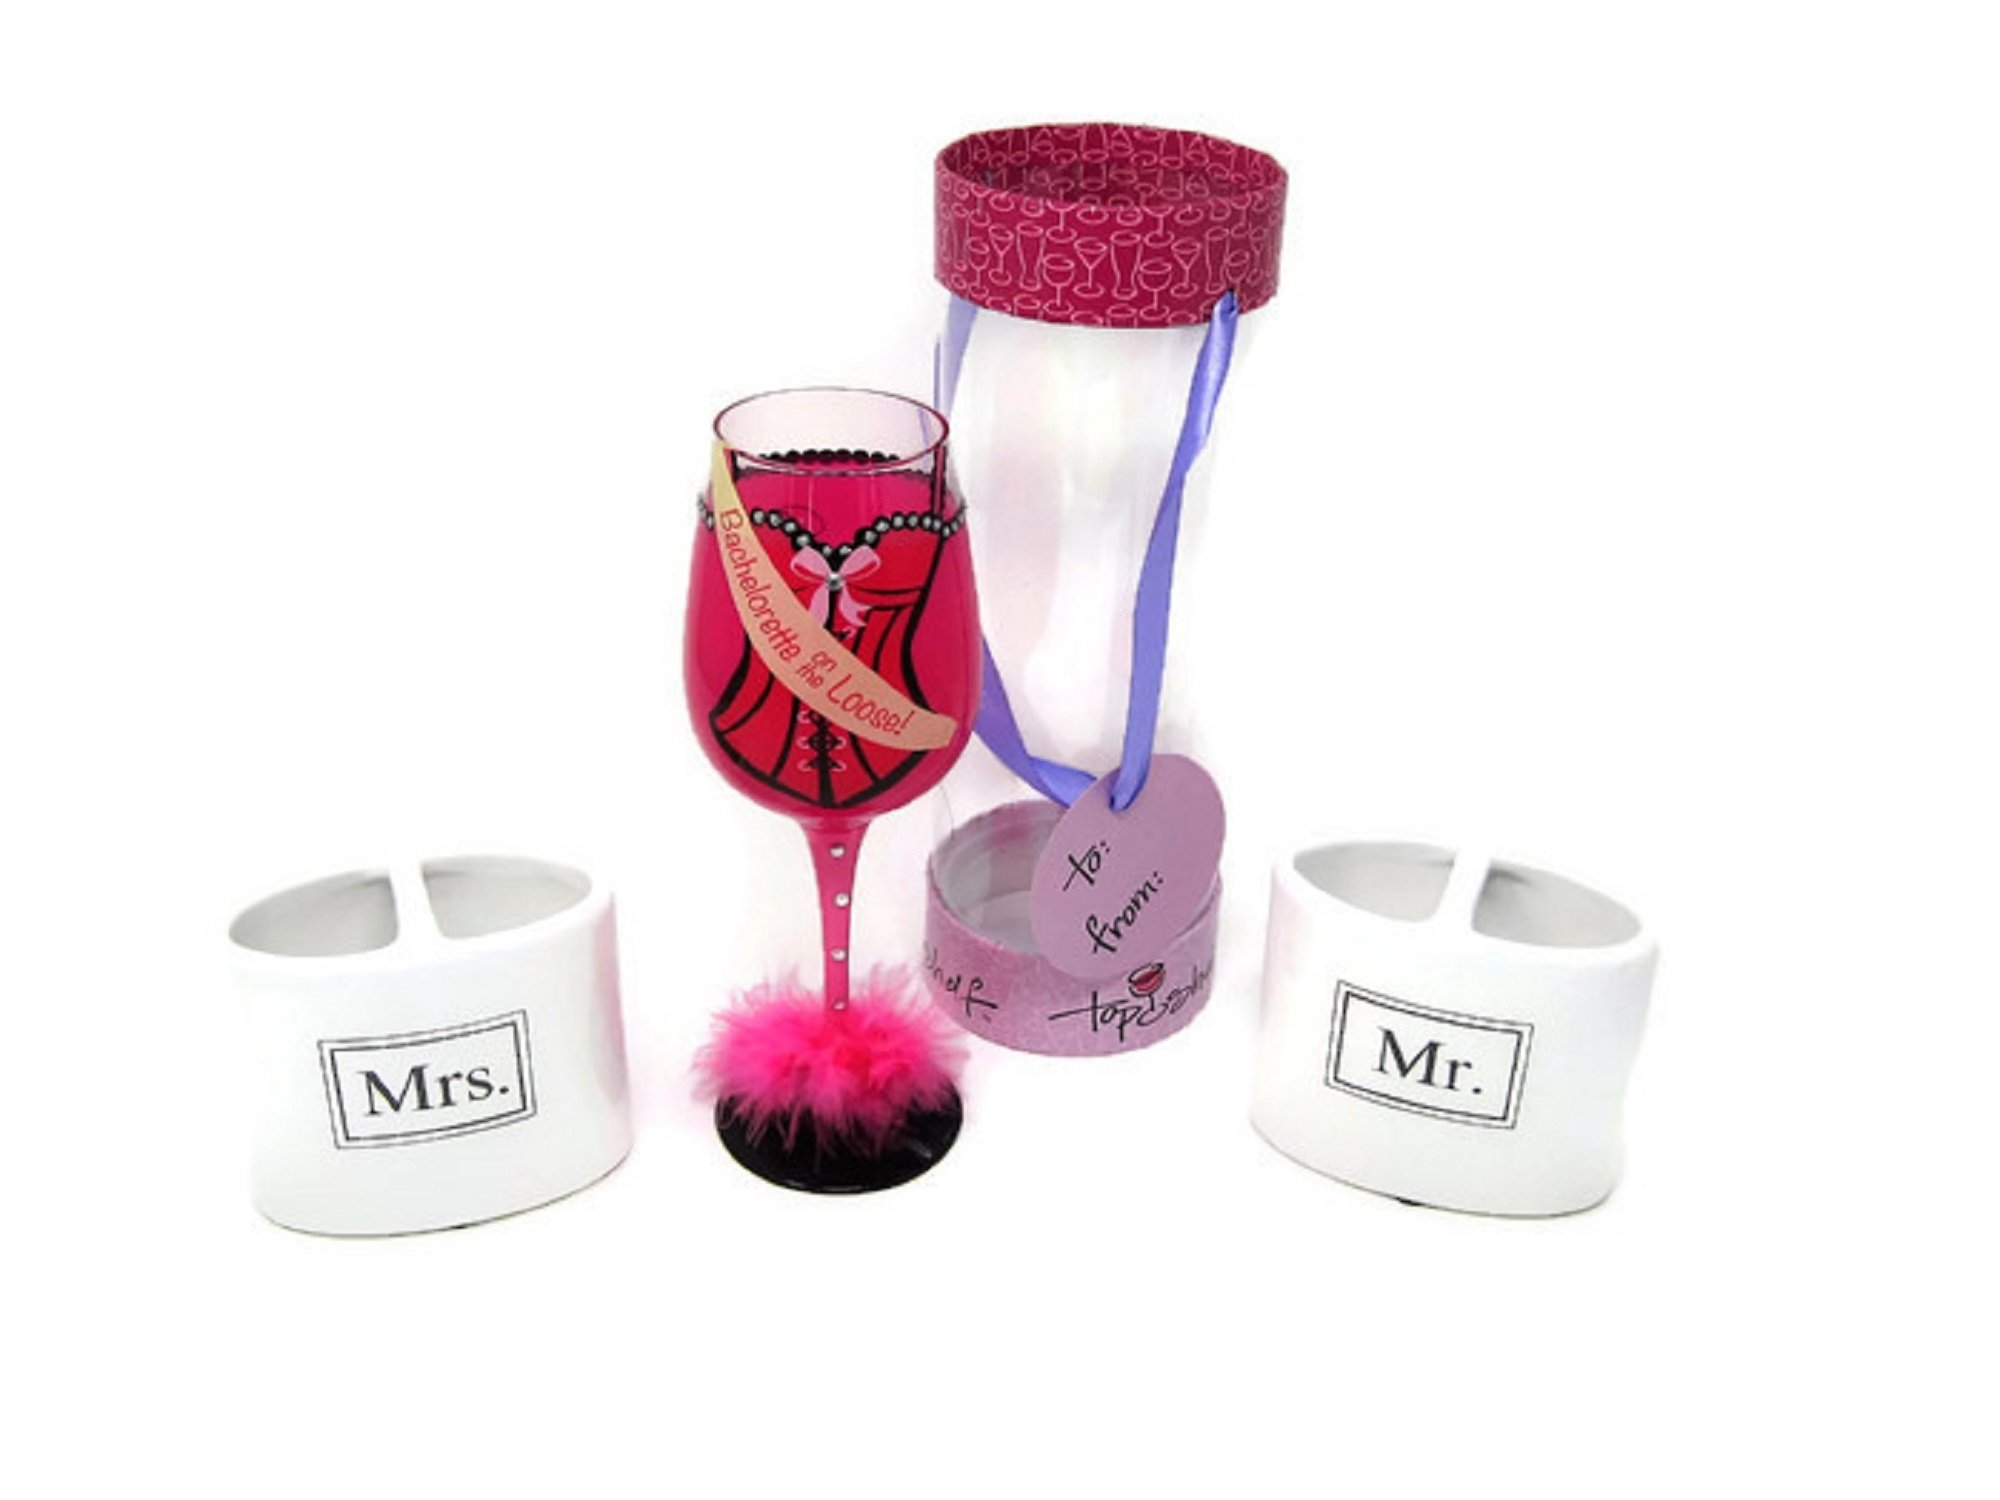 Top Shelf Girls Gone Bridal Bachelorette on The Loose Wine Glass with Mr & Mrs Toothbrush Holders